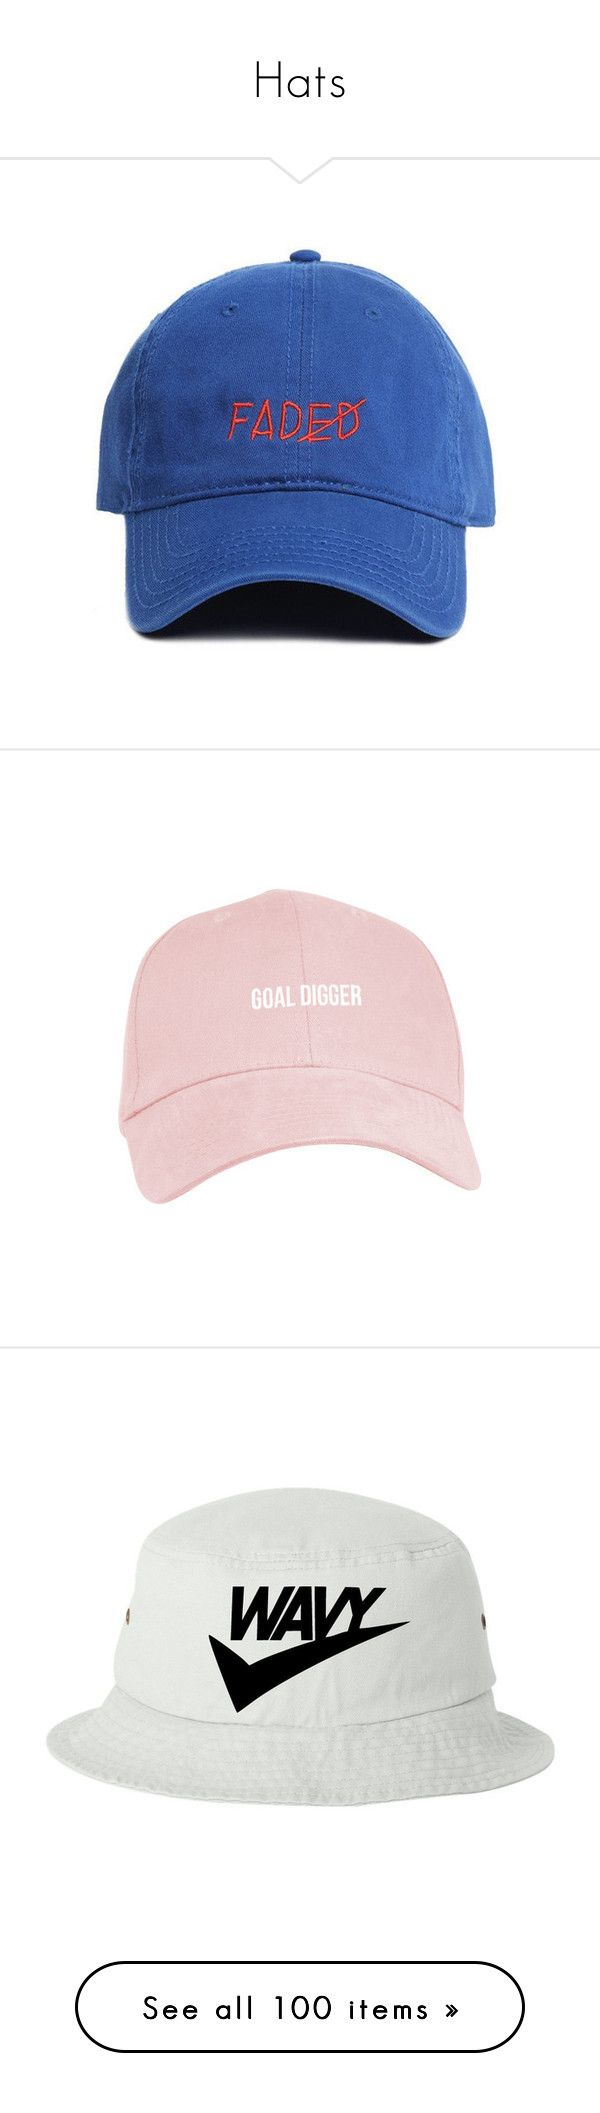 """""""Hats"""" by slayzhane ❤ liked on Polyvore featuring accessories, hats, visor hats, adjustable hats, cap hats, visor cap, sun visor cap, extra, cap and embroidered baseball caps"""